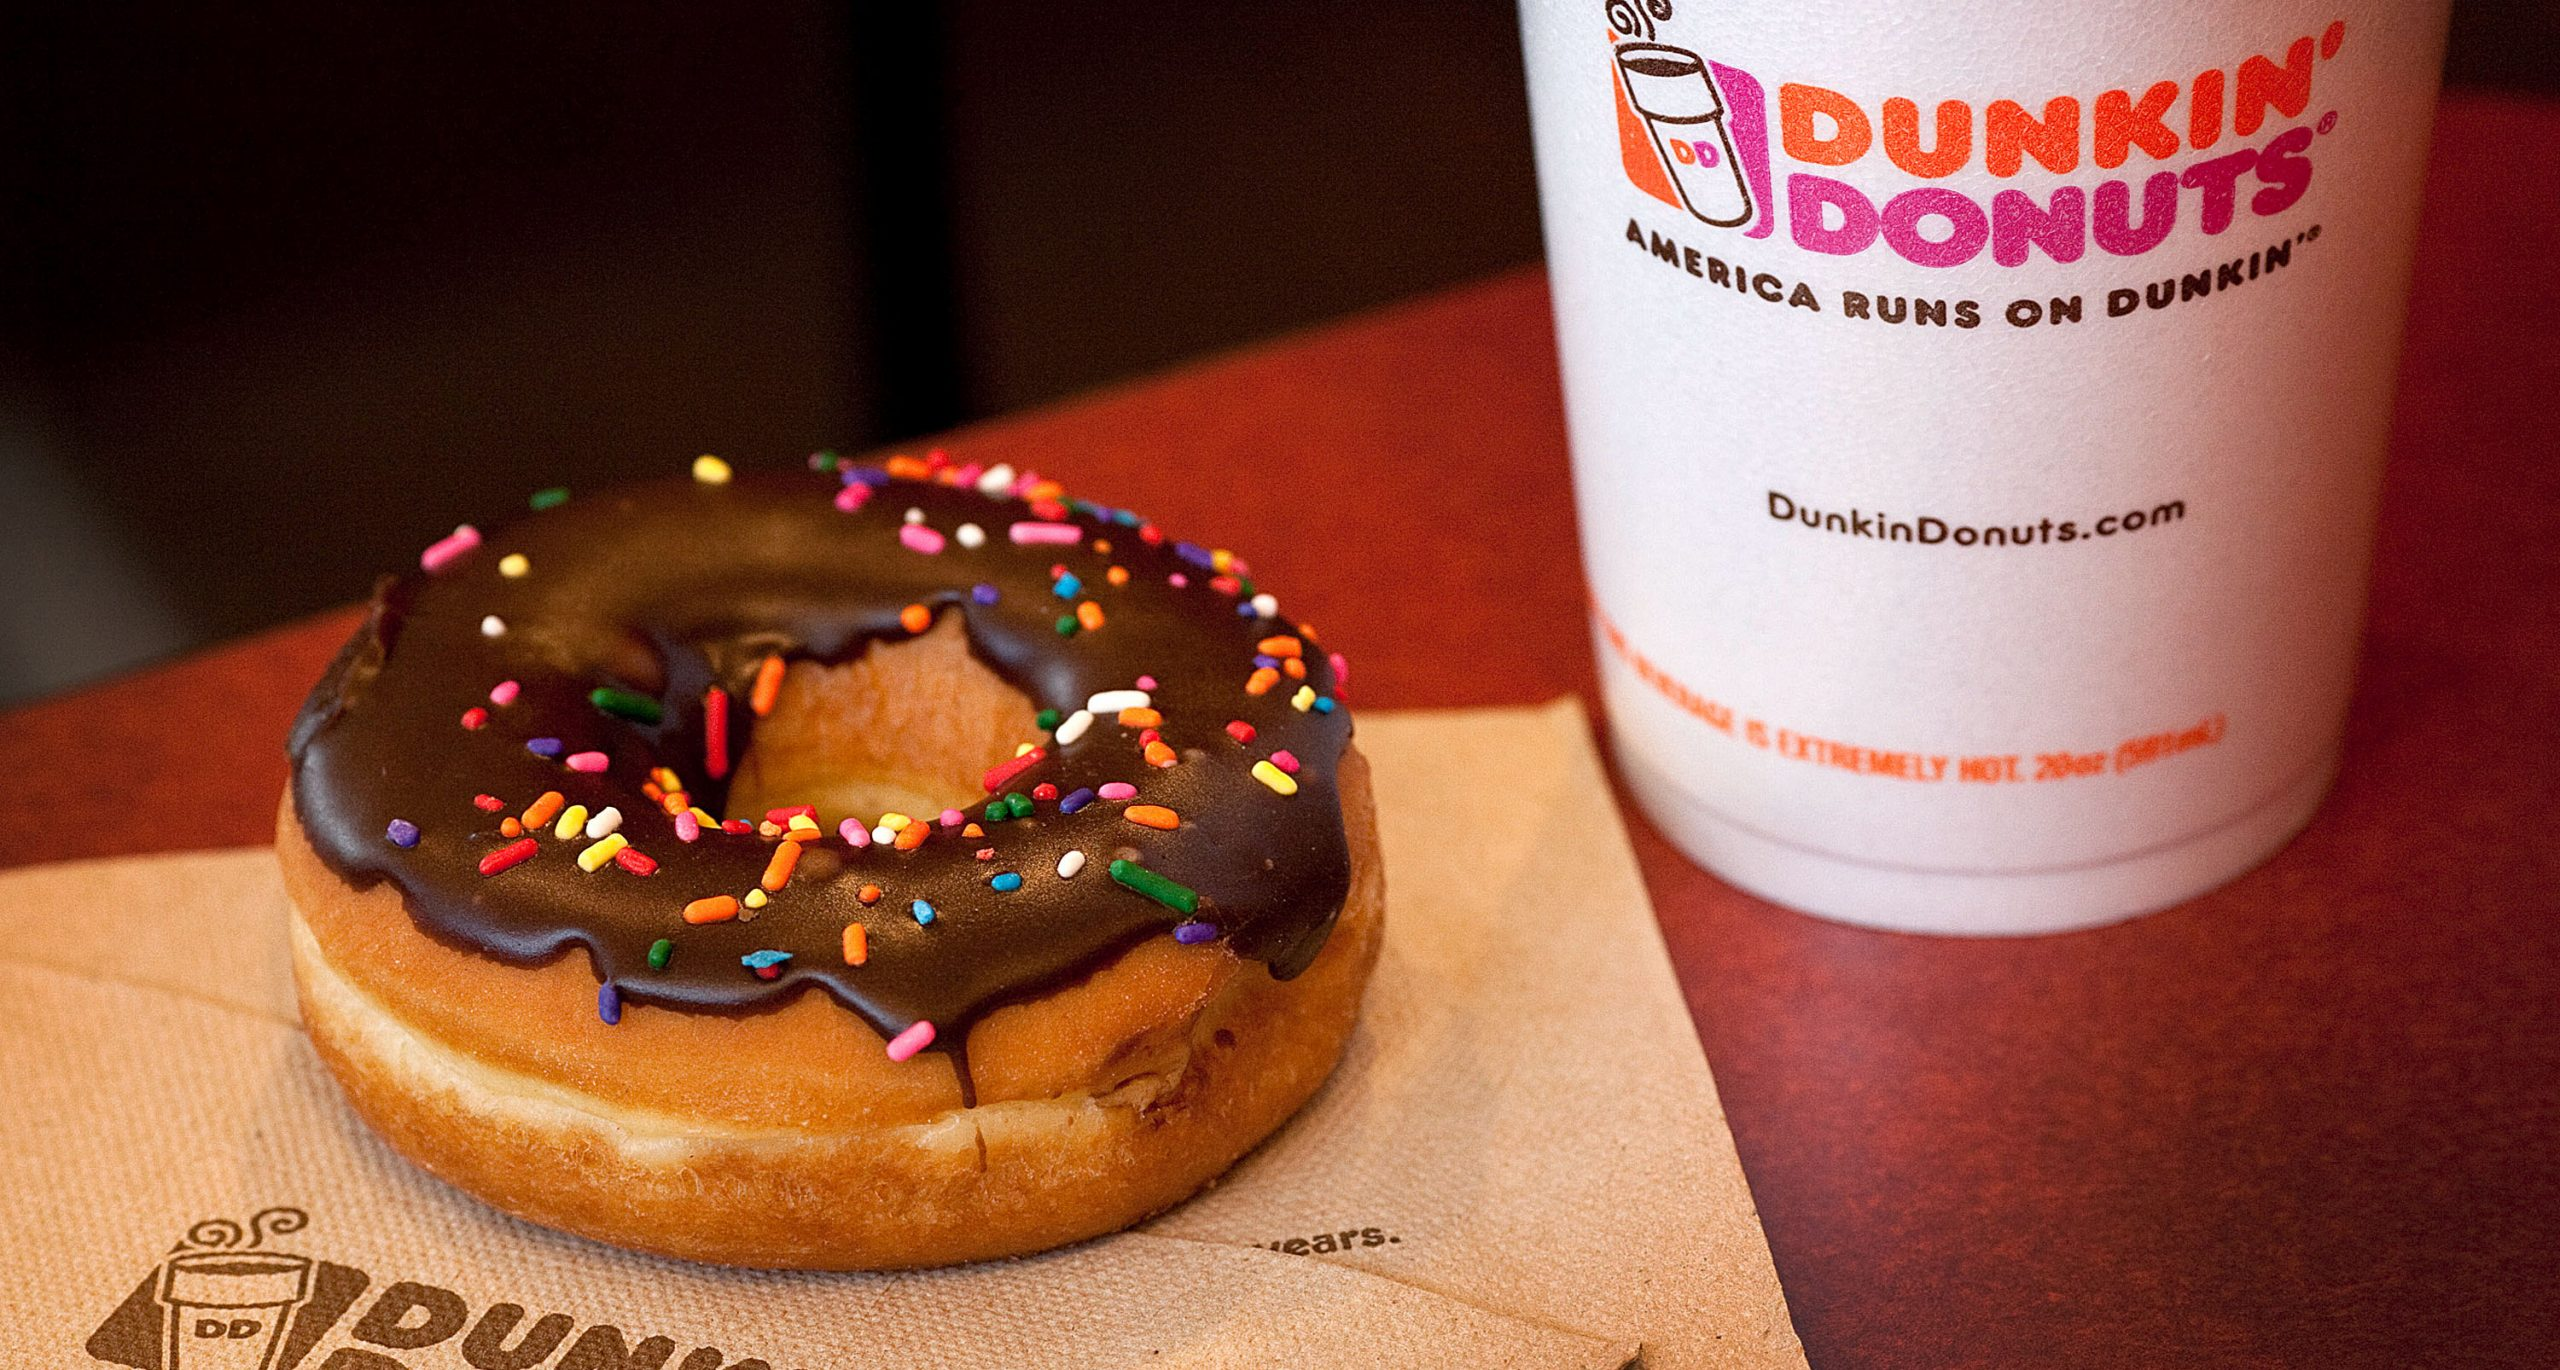 Coffee and Donut from Dunkin' Donuts